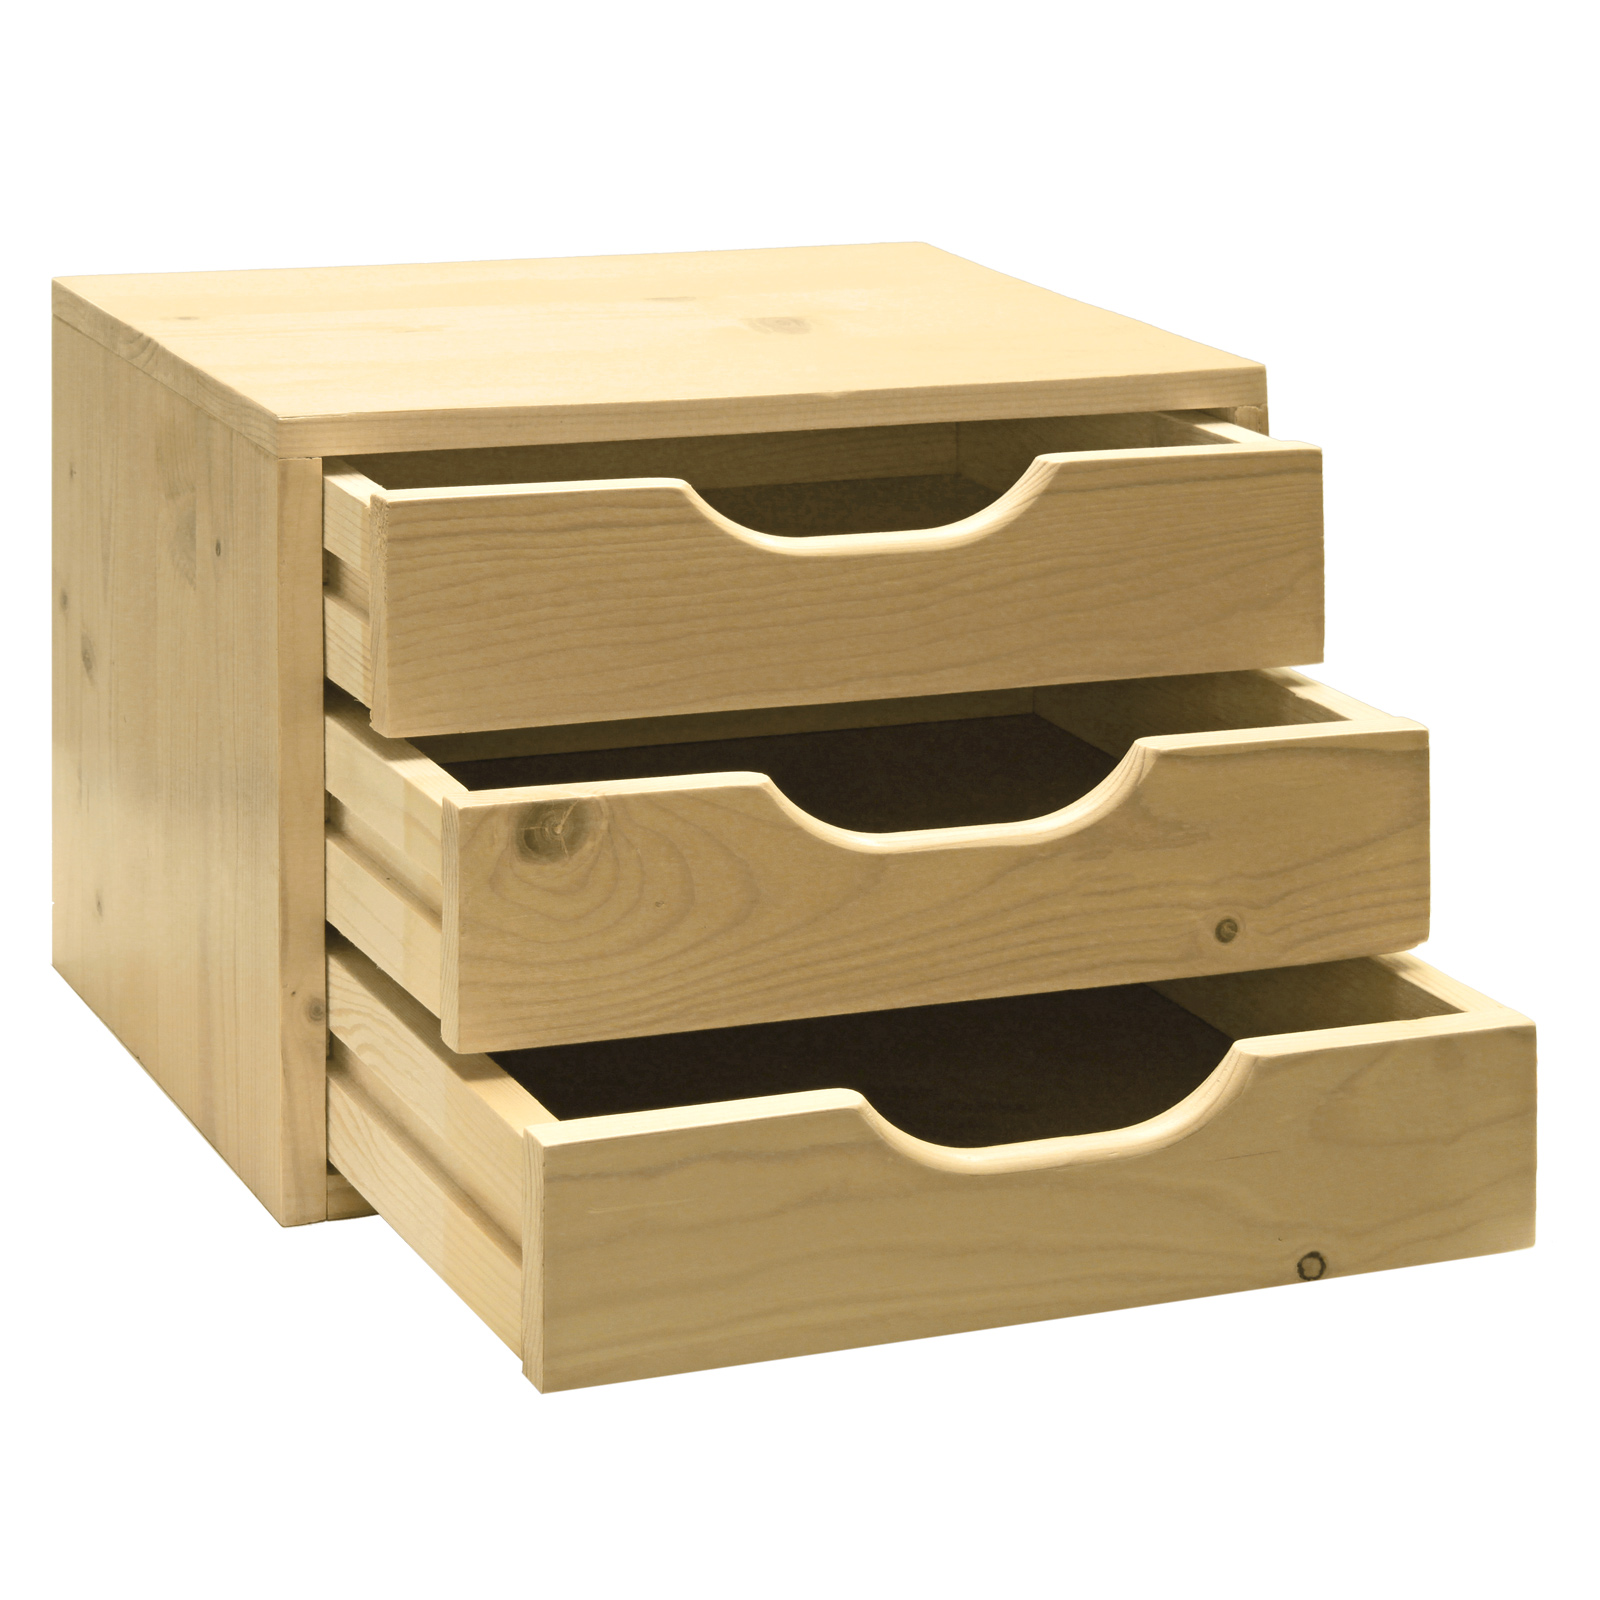 nachttisch holzbox box kiste holz schubladen neu 40617 ebay. Black Bedroom Furniture Sets. Home Design Ideas